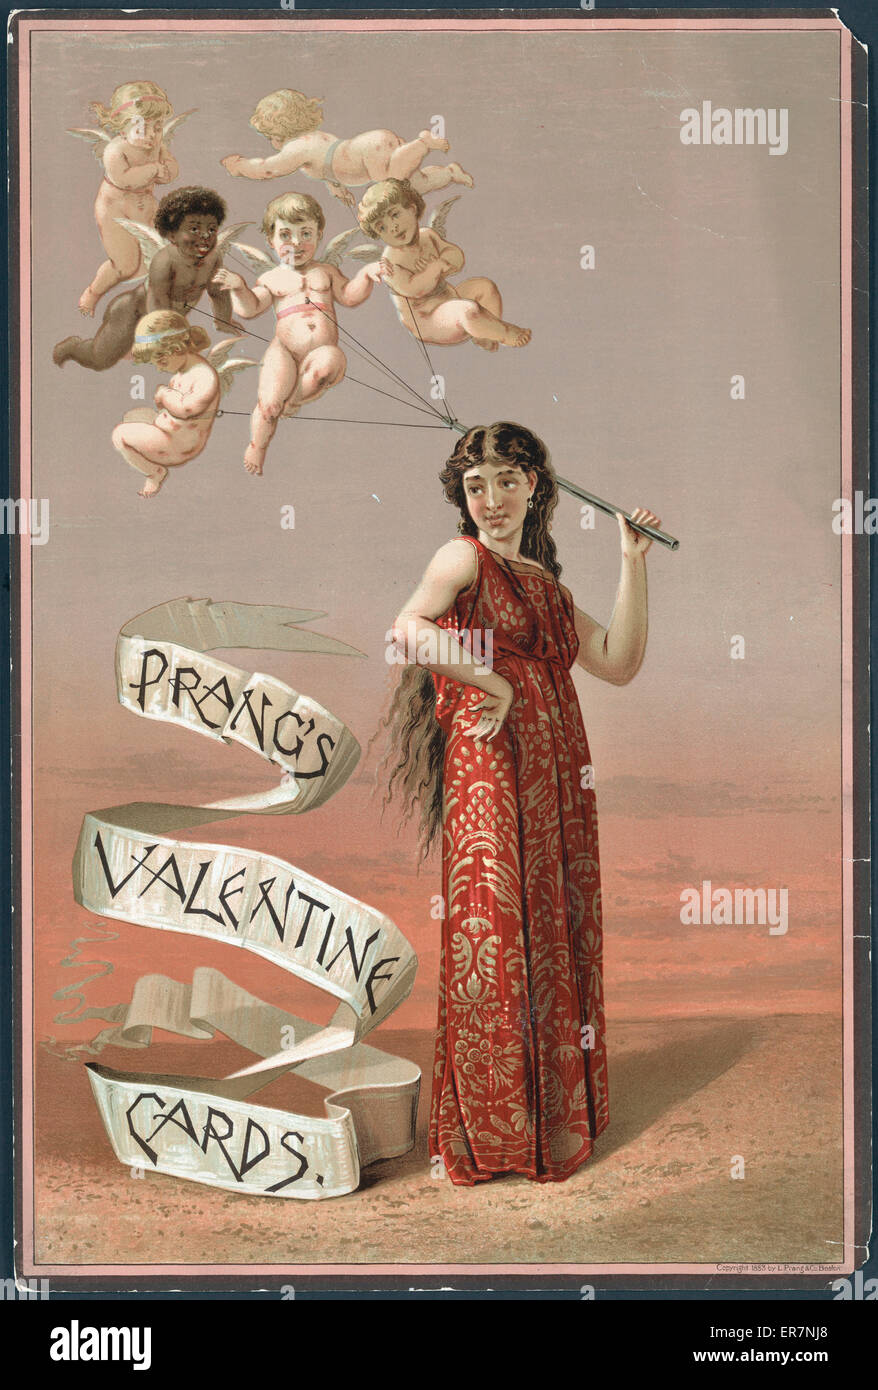 Prang's Valentine cards. Advertisement for Prang's greeting cards, showing a woman holding a group of tethered - Stock Image